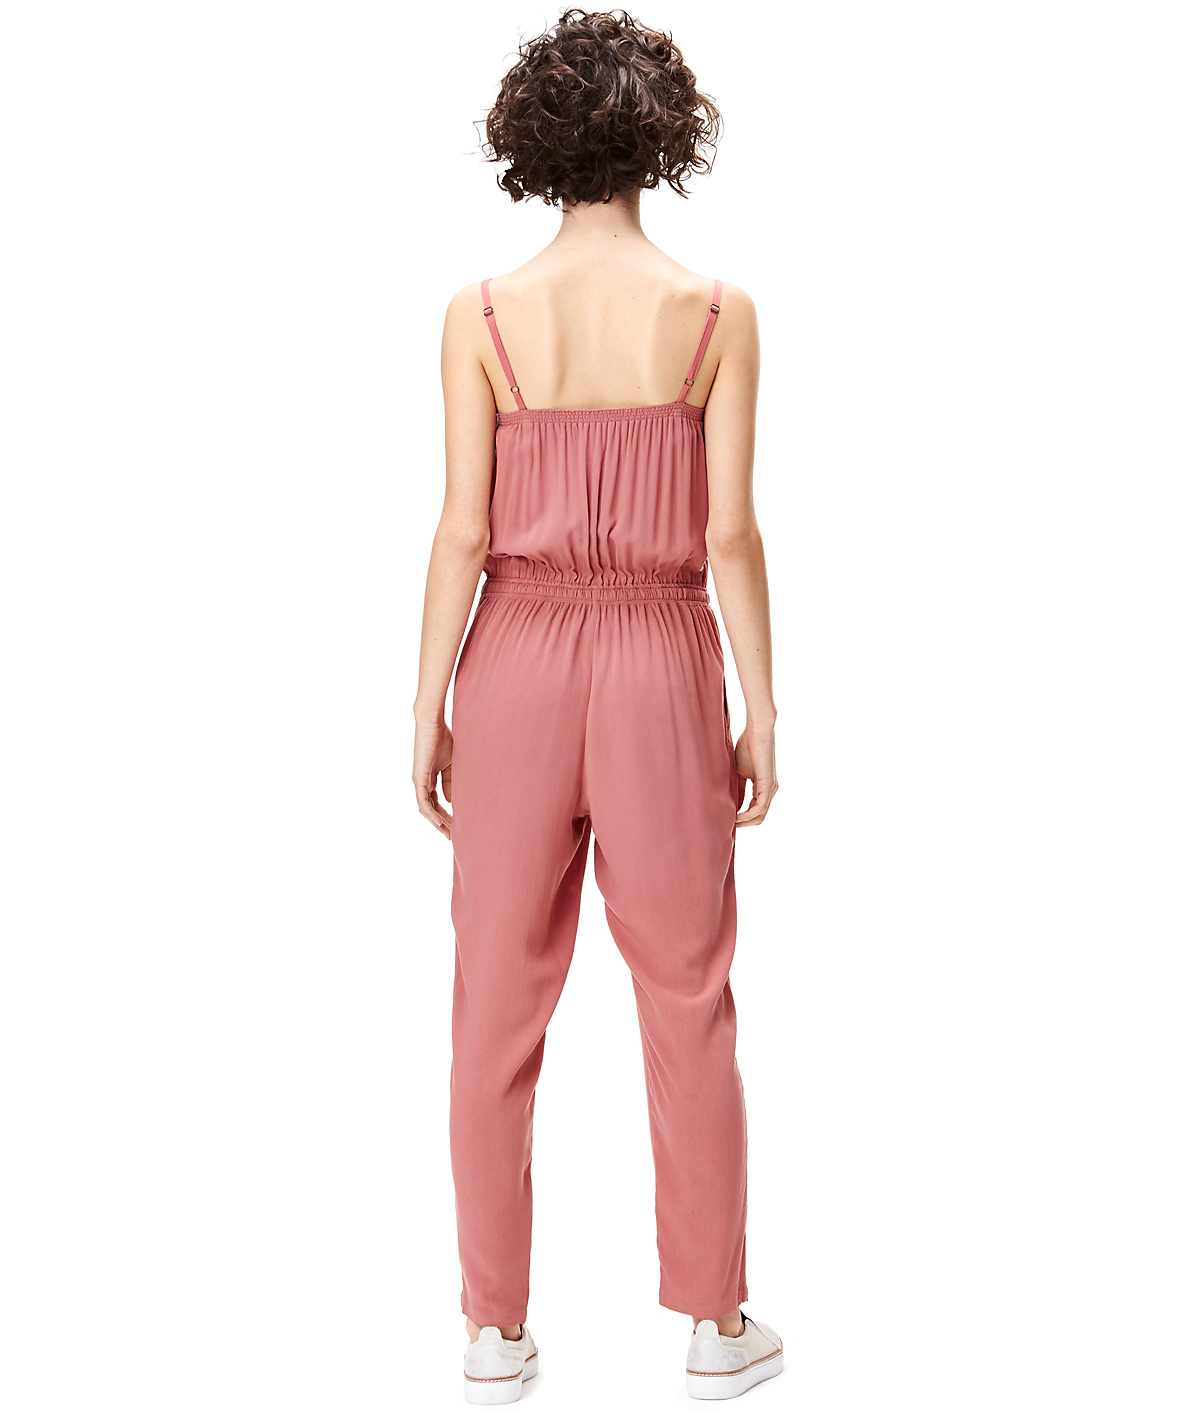 Jumpsuit S1162703 from liebeskind